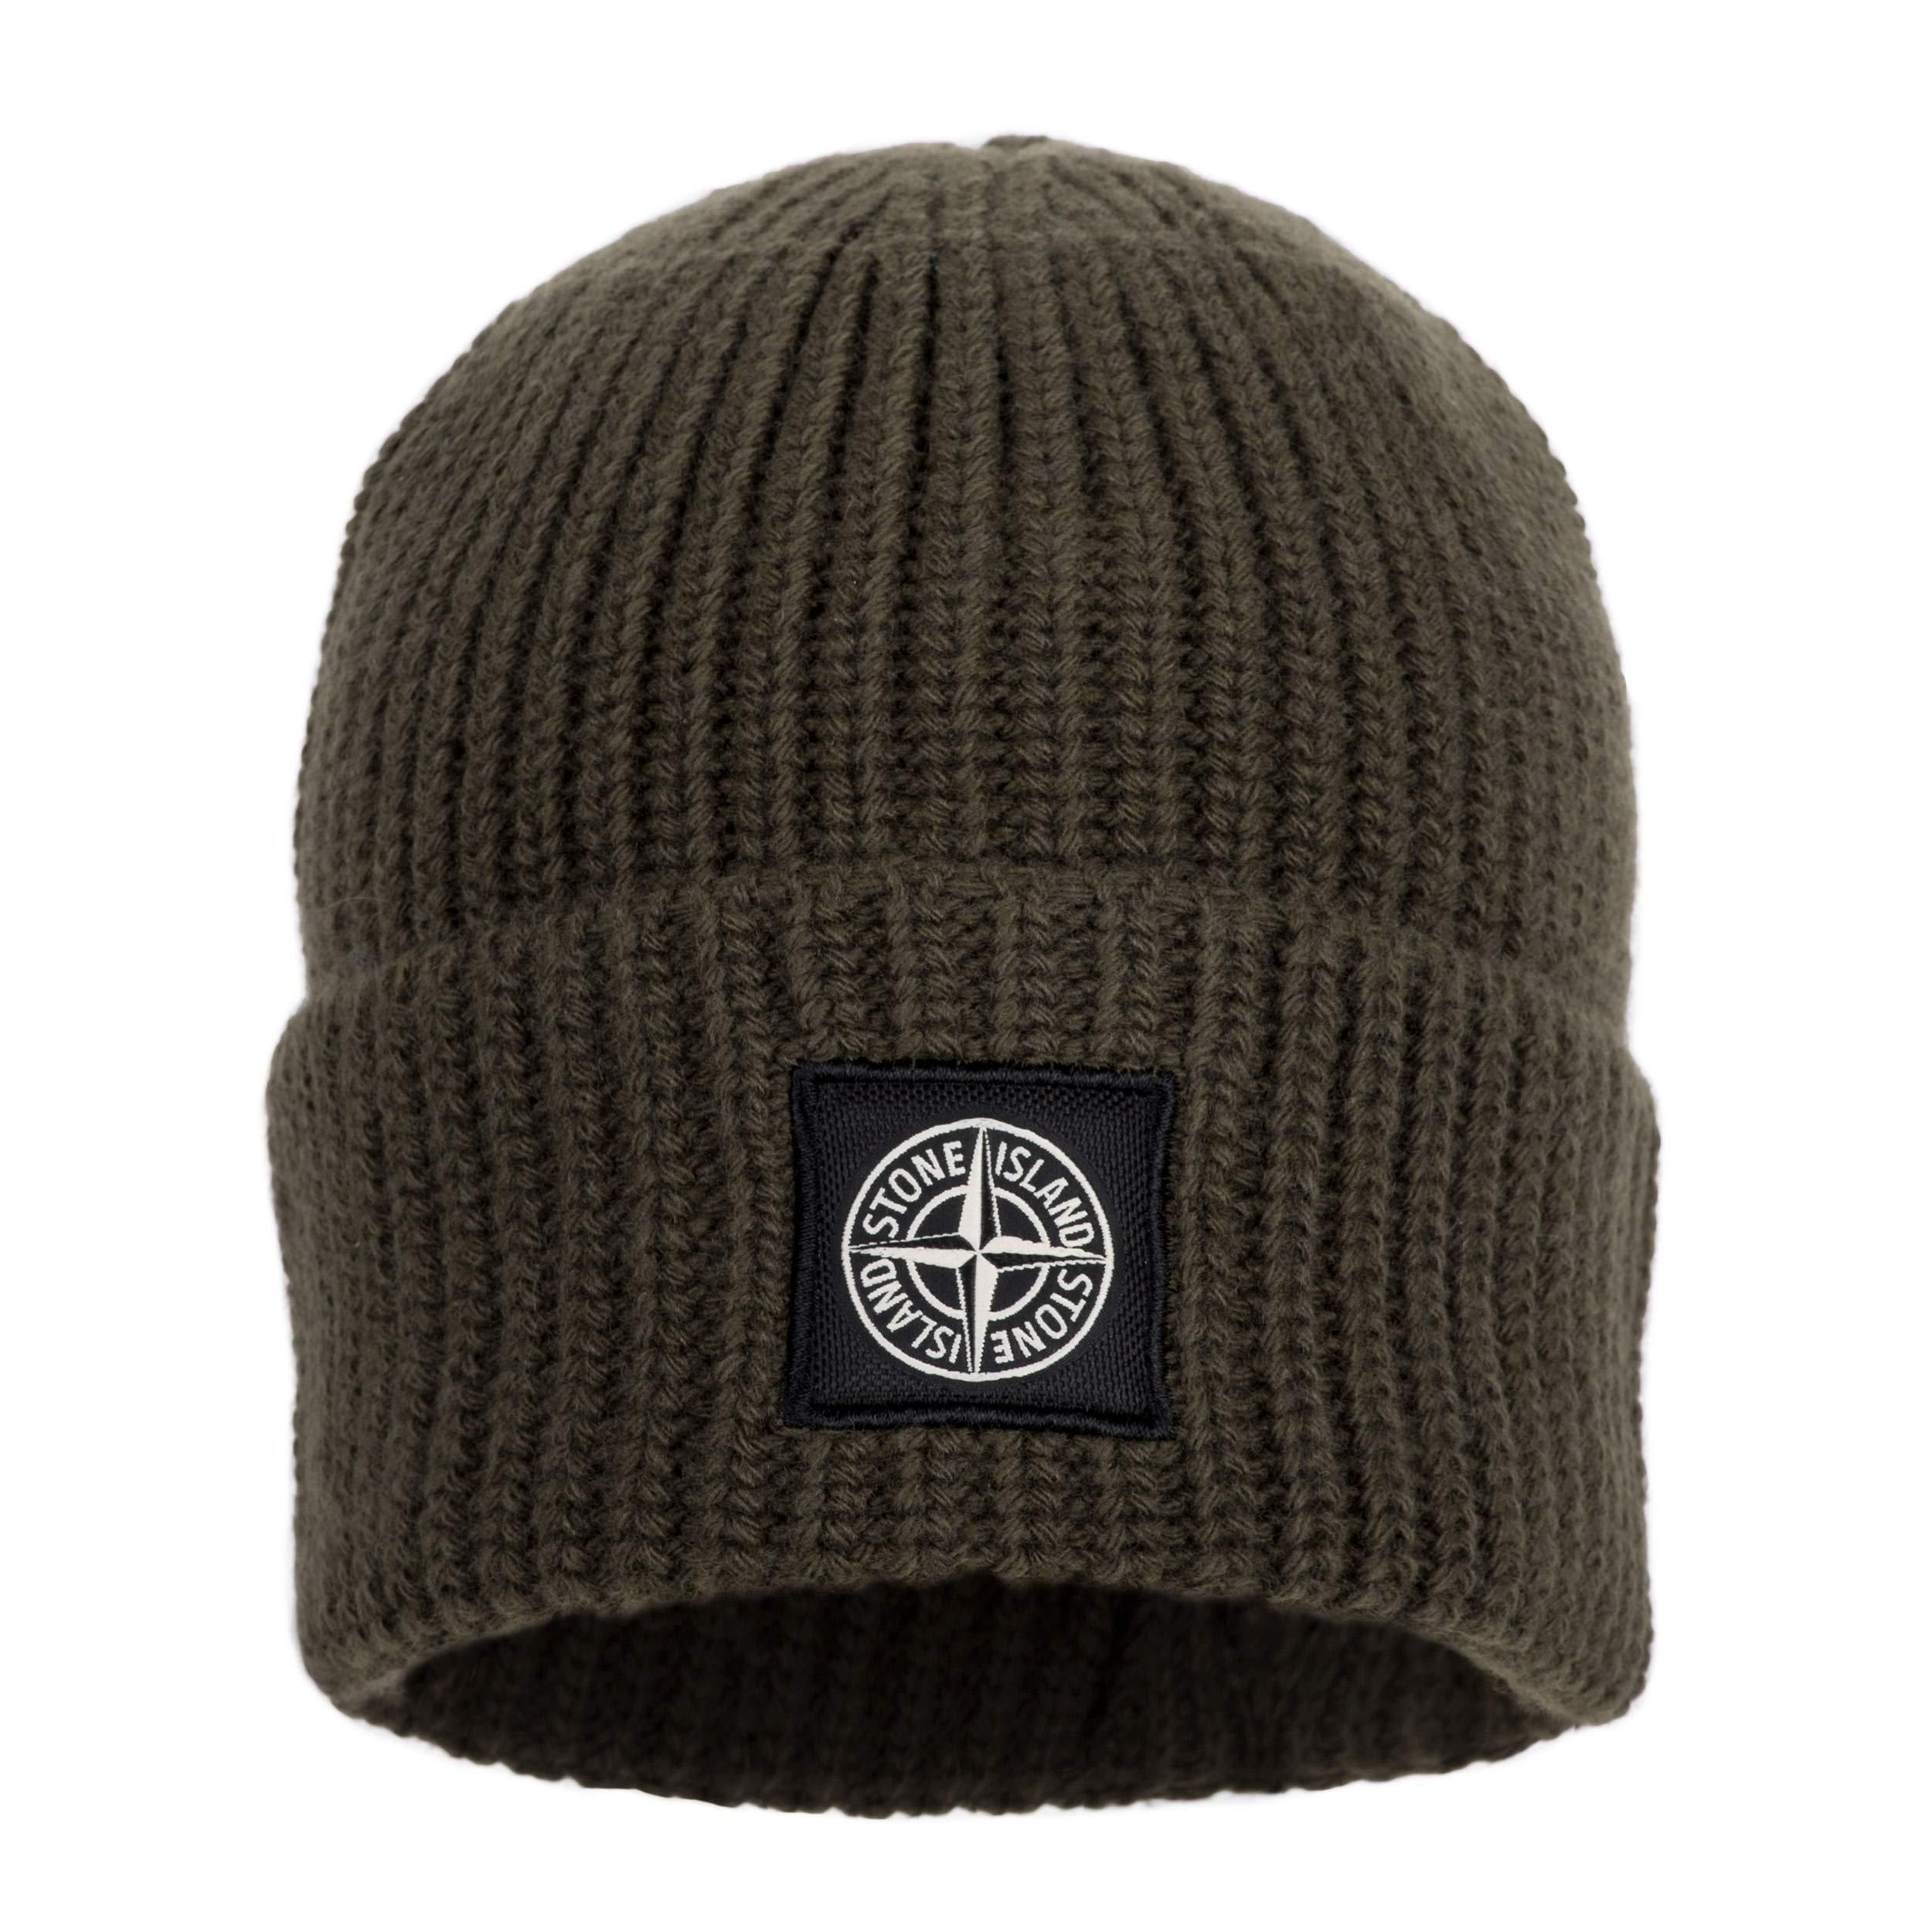 Stone Island Men s Autumn Winter 2018 Beanie Hat in Olive (6915N10B5 V0058)  – RRP c49502b3d0fb